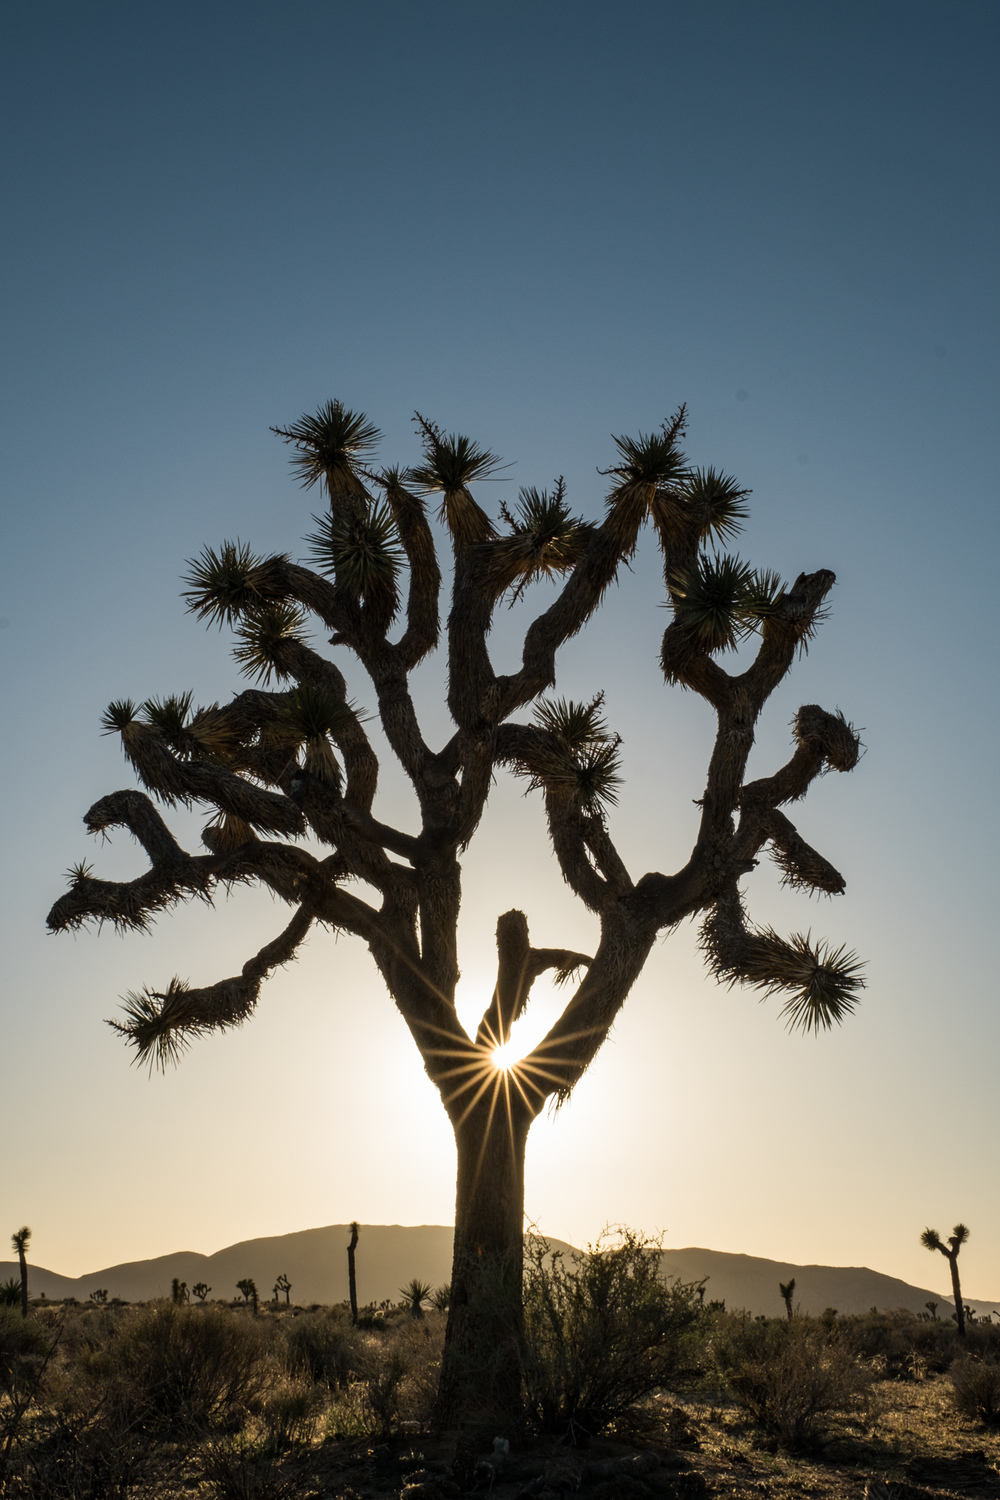 More Joshua Trees at sunset. They never get old. I love the silhouette of the Dr Seuss-like branches.